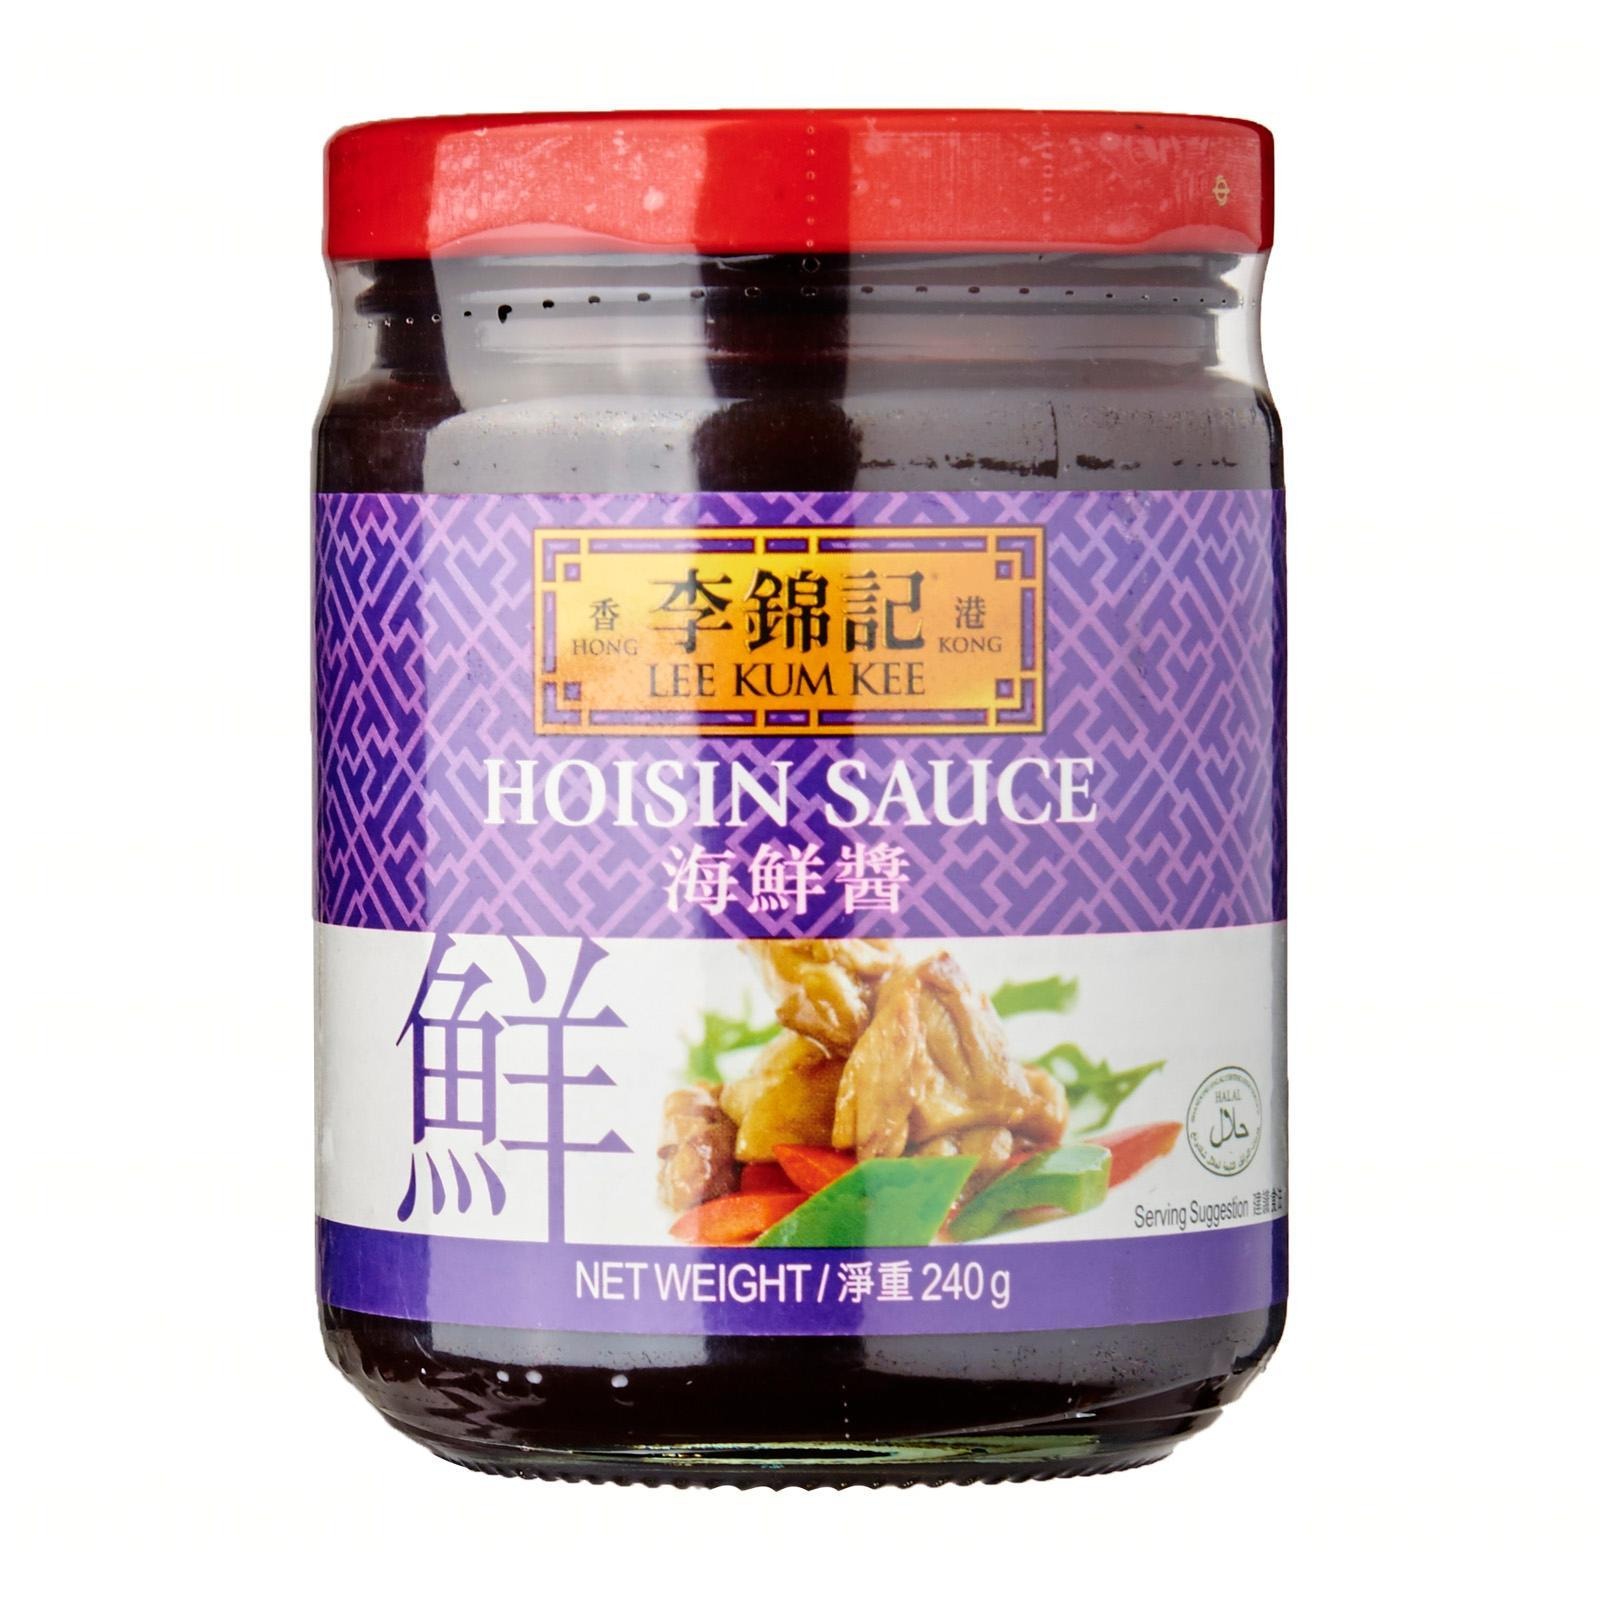 Lee Kum Kee Sweet (Hoisin) Sauce